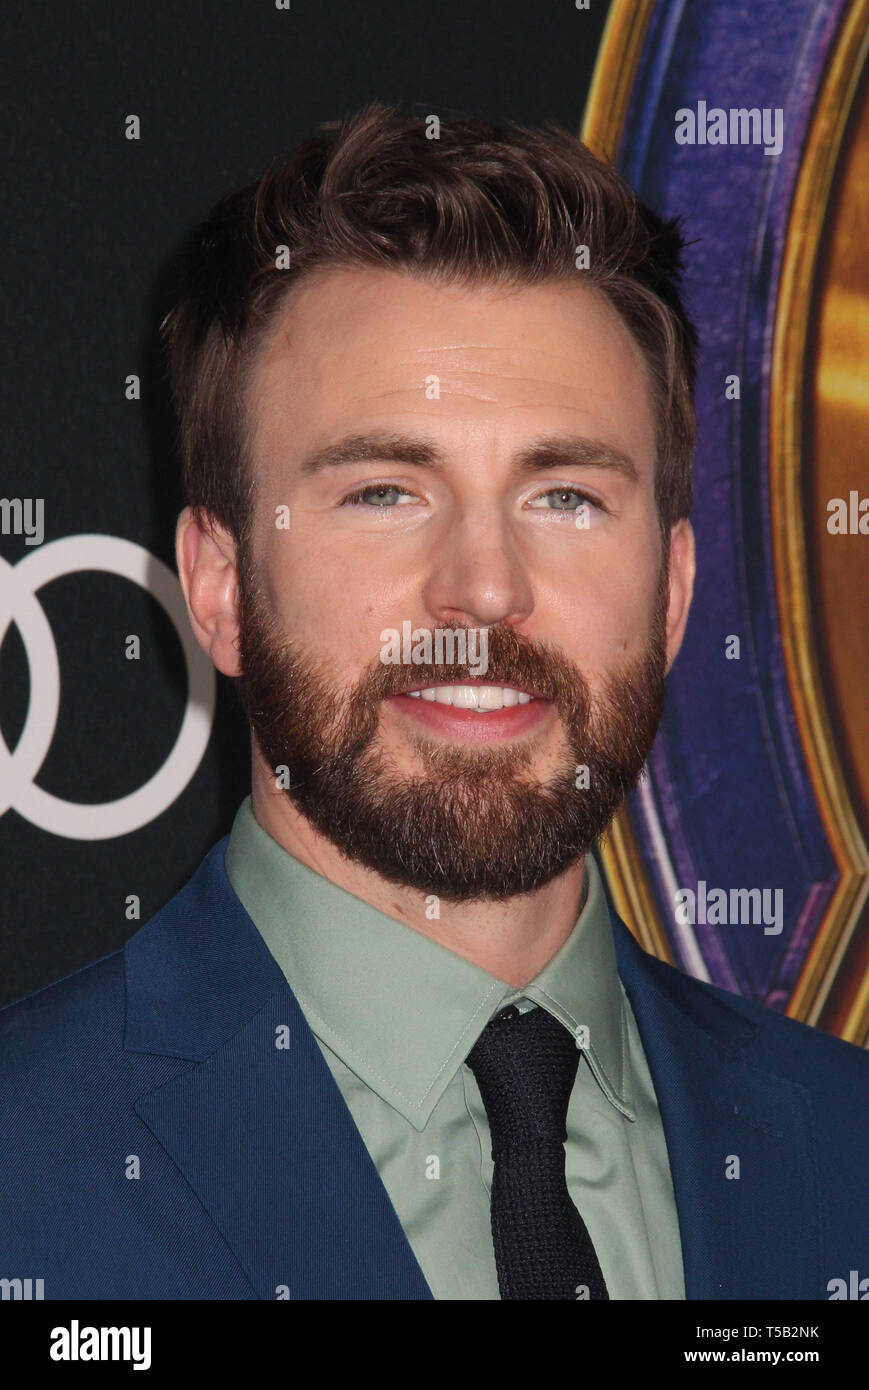 "Los Angeles, USA. 22nd Apr 2019. Chris Evans  04/22/2019 The world premiere of Marvel Studios'""Avengers: Endgame"" held at The Los Angeles Convention Center in Los Angeles, CA Photo by Izumi Hasegawa / HollywoodNewsWire.co Credit: Hollywood News Wire Inc./Alamy Live News Stock Photo"